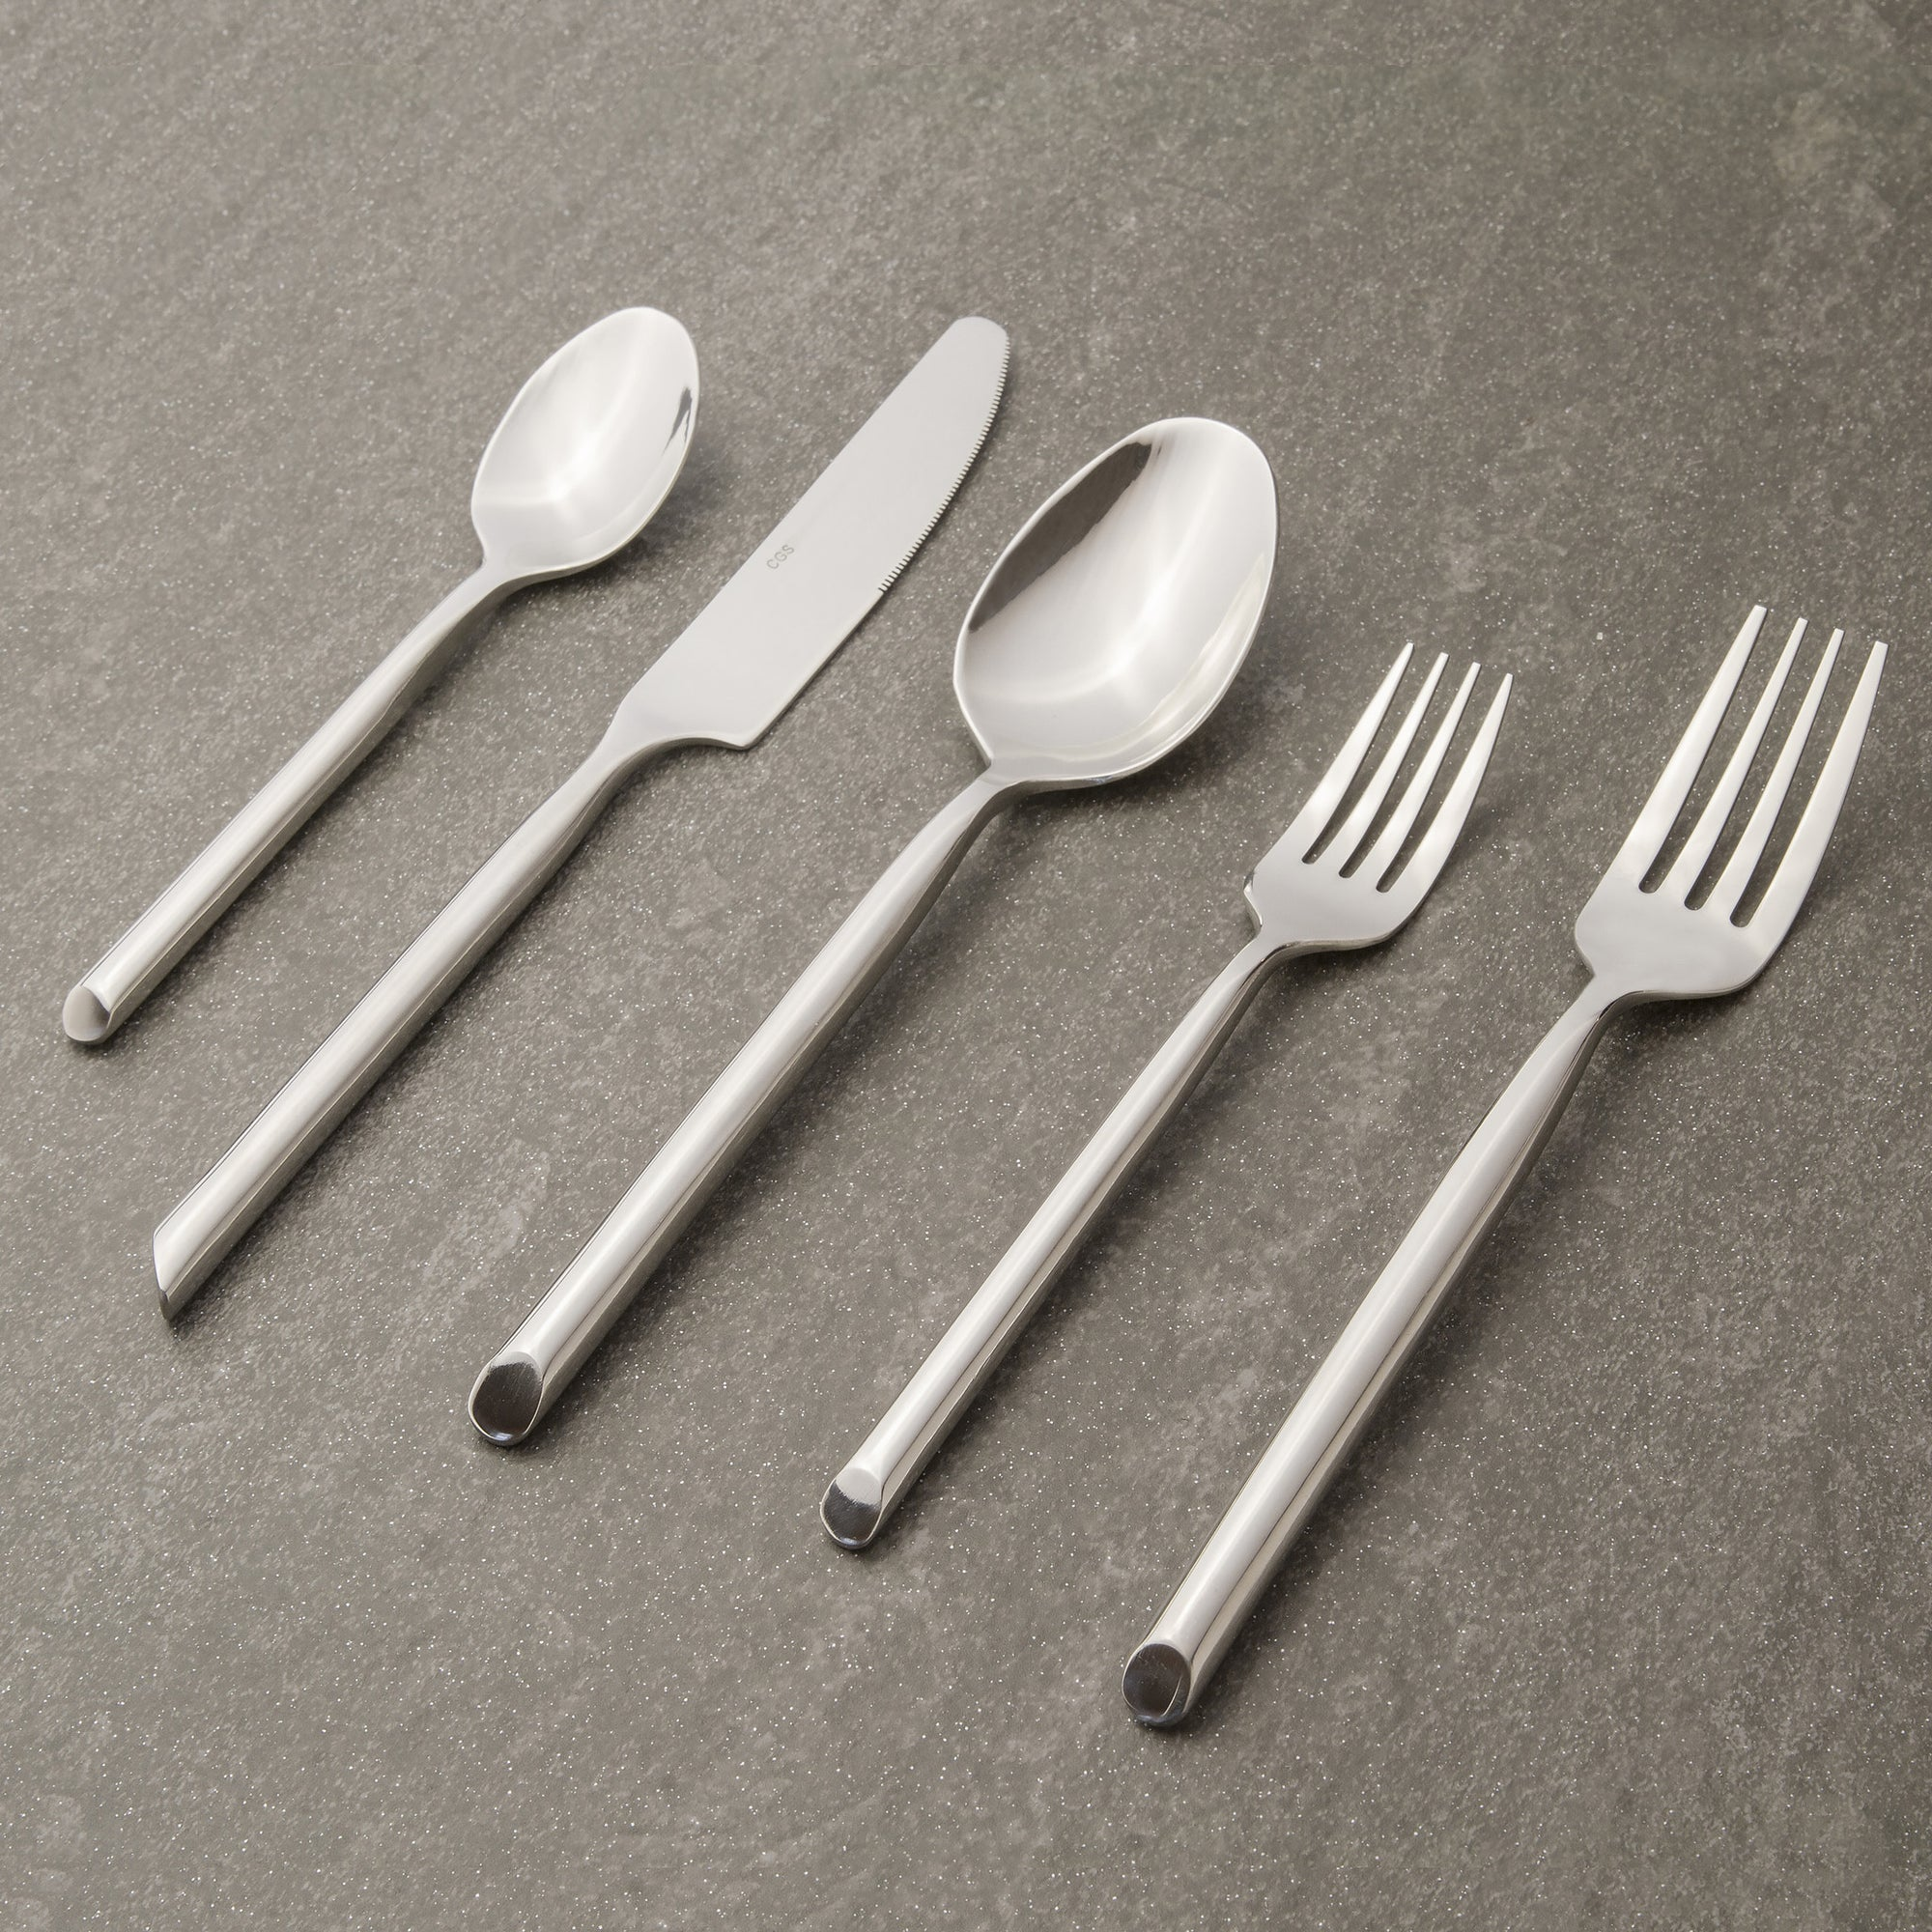 South Beach 20-Piece Flatware Set Flatware CGS Tableshop - ROVE AND SWIG